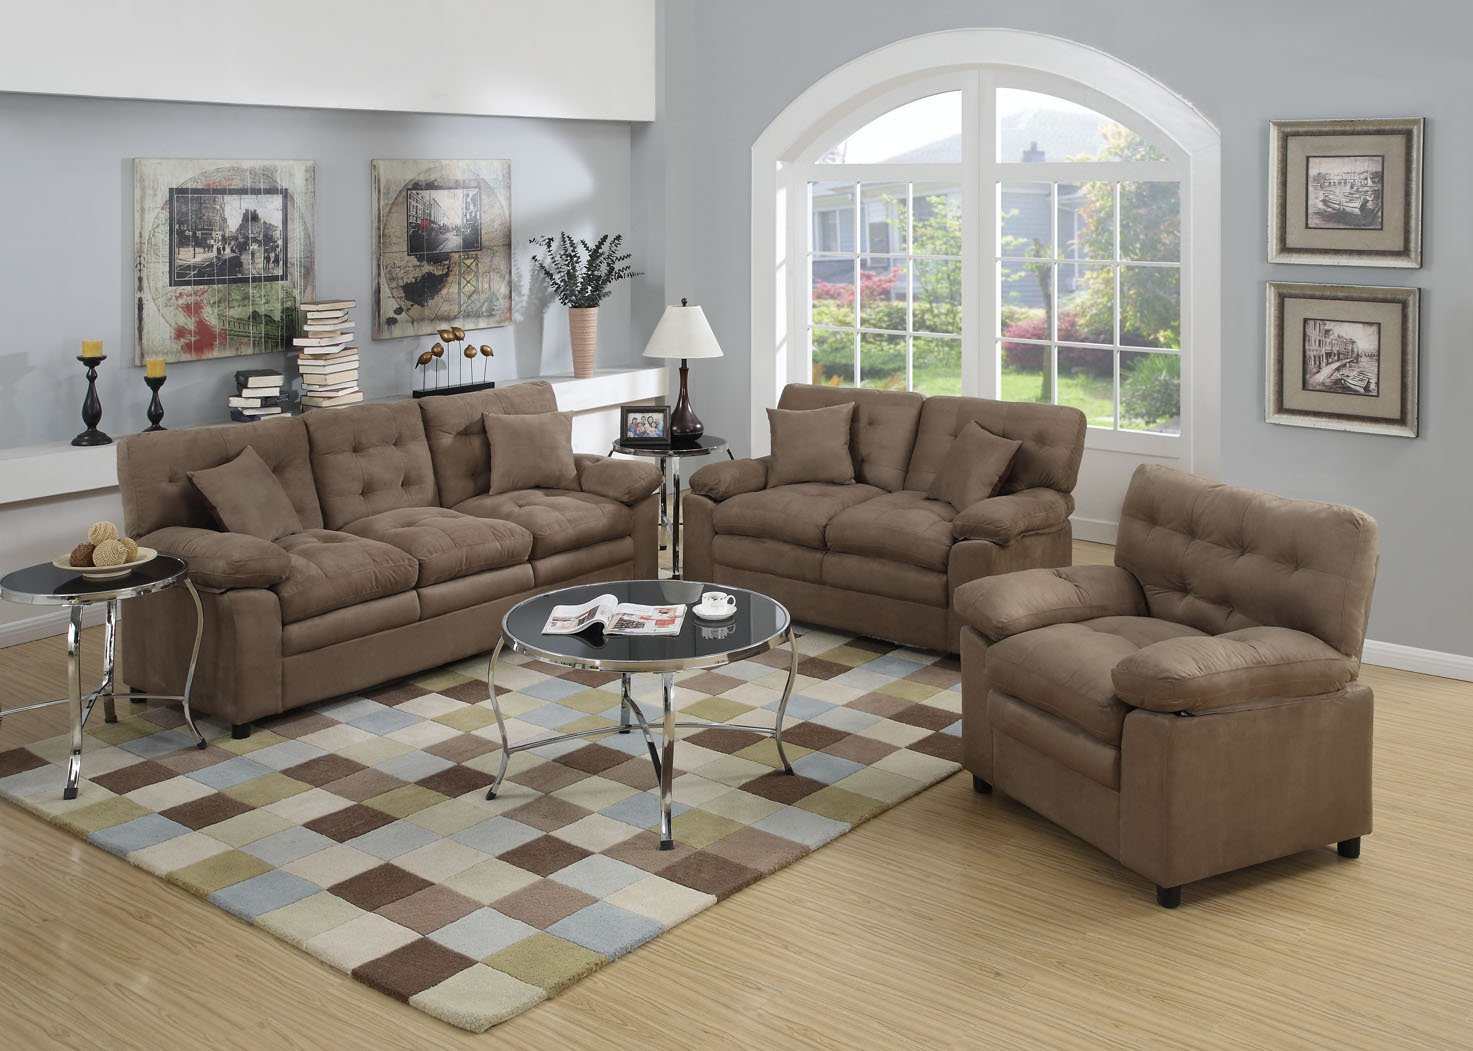 loveseat console power reclining room beige buy sets atlantis set living badcock sofa more